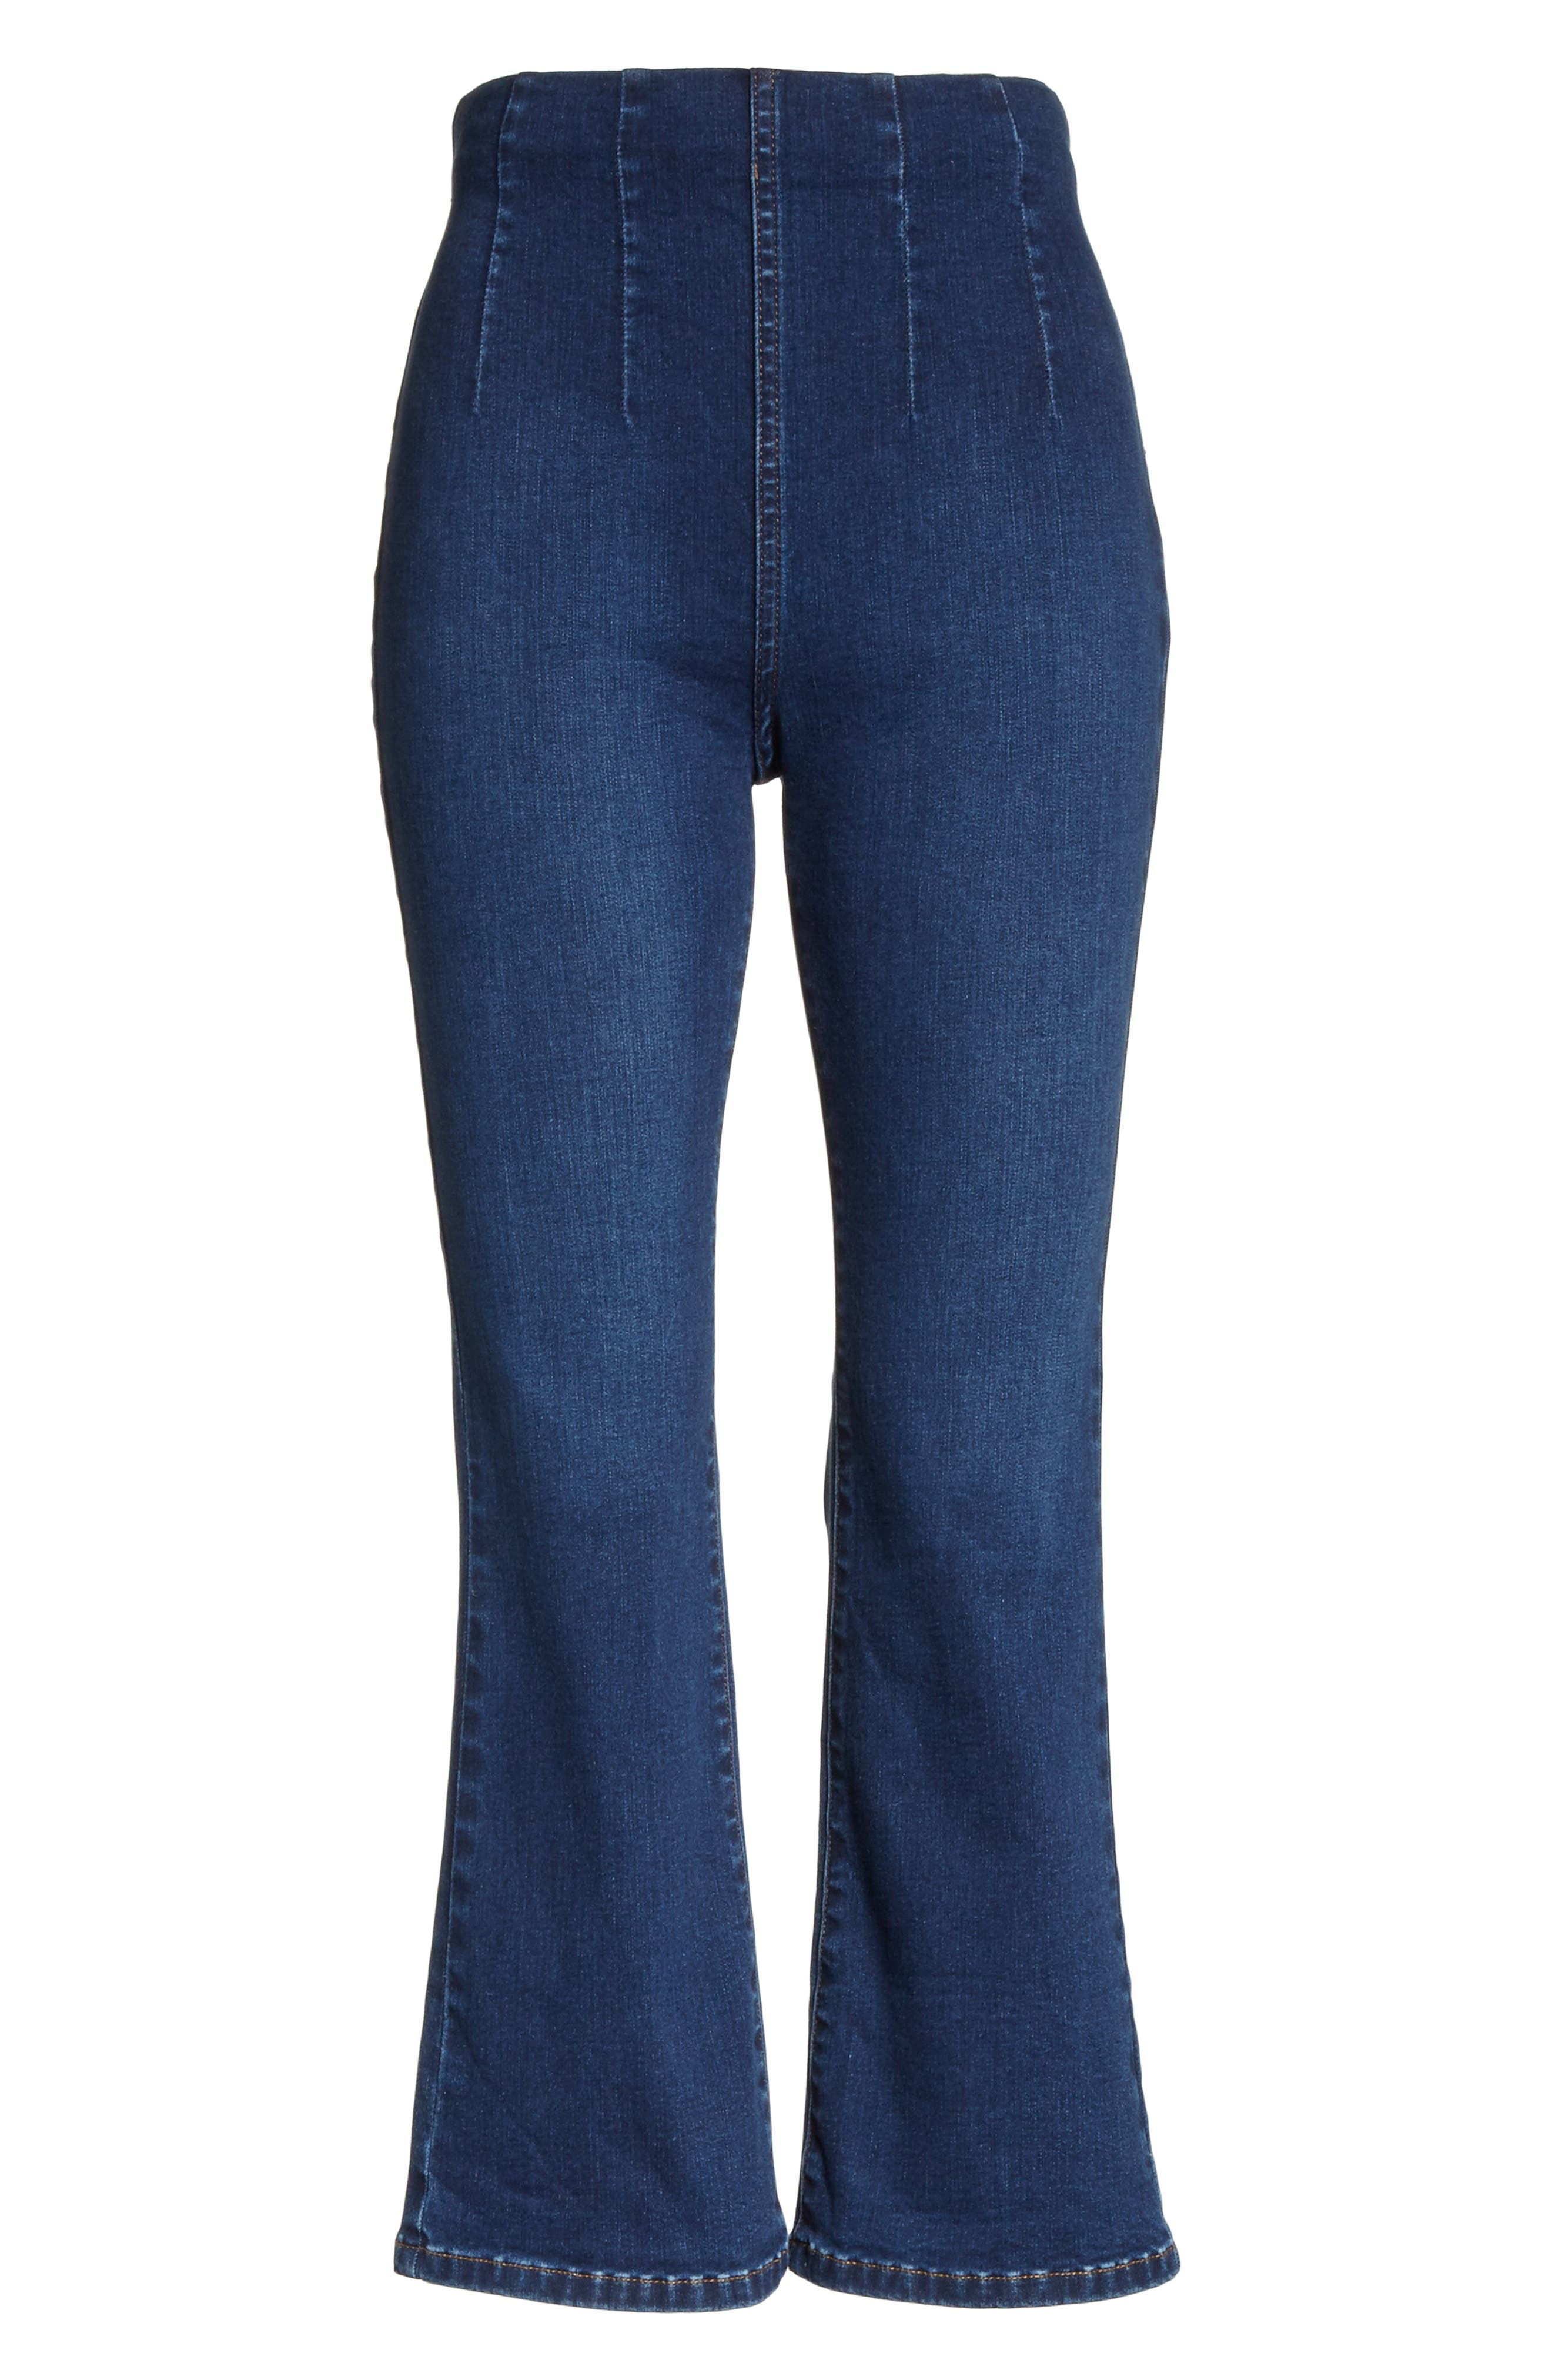 Pull-On Ultra High Waist Crop Bootcut Jeans,                             Alternate thumbnail 8, color,                             Blue